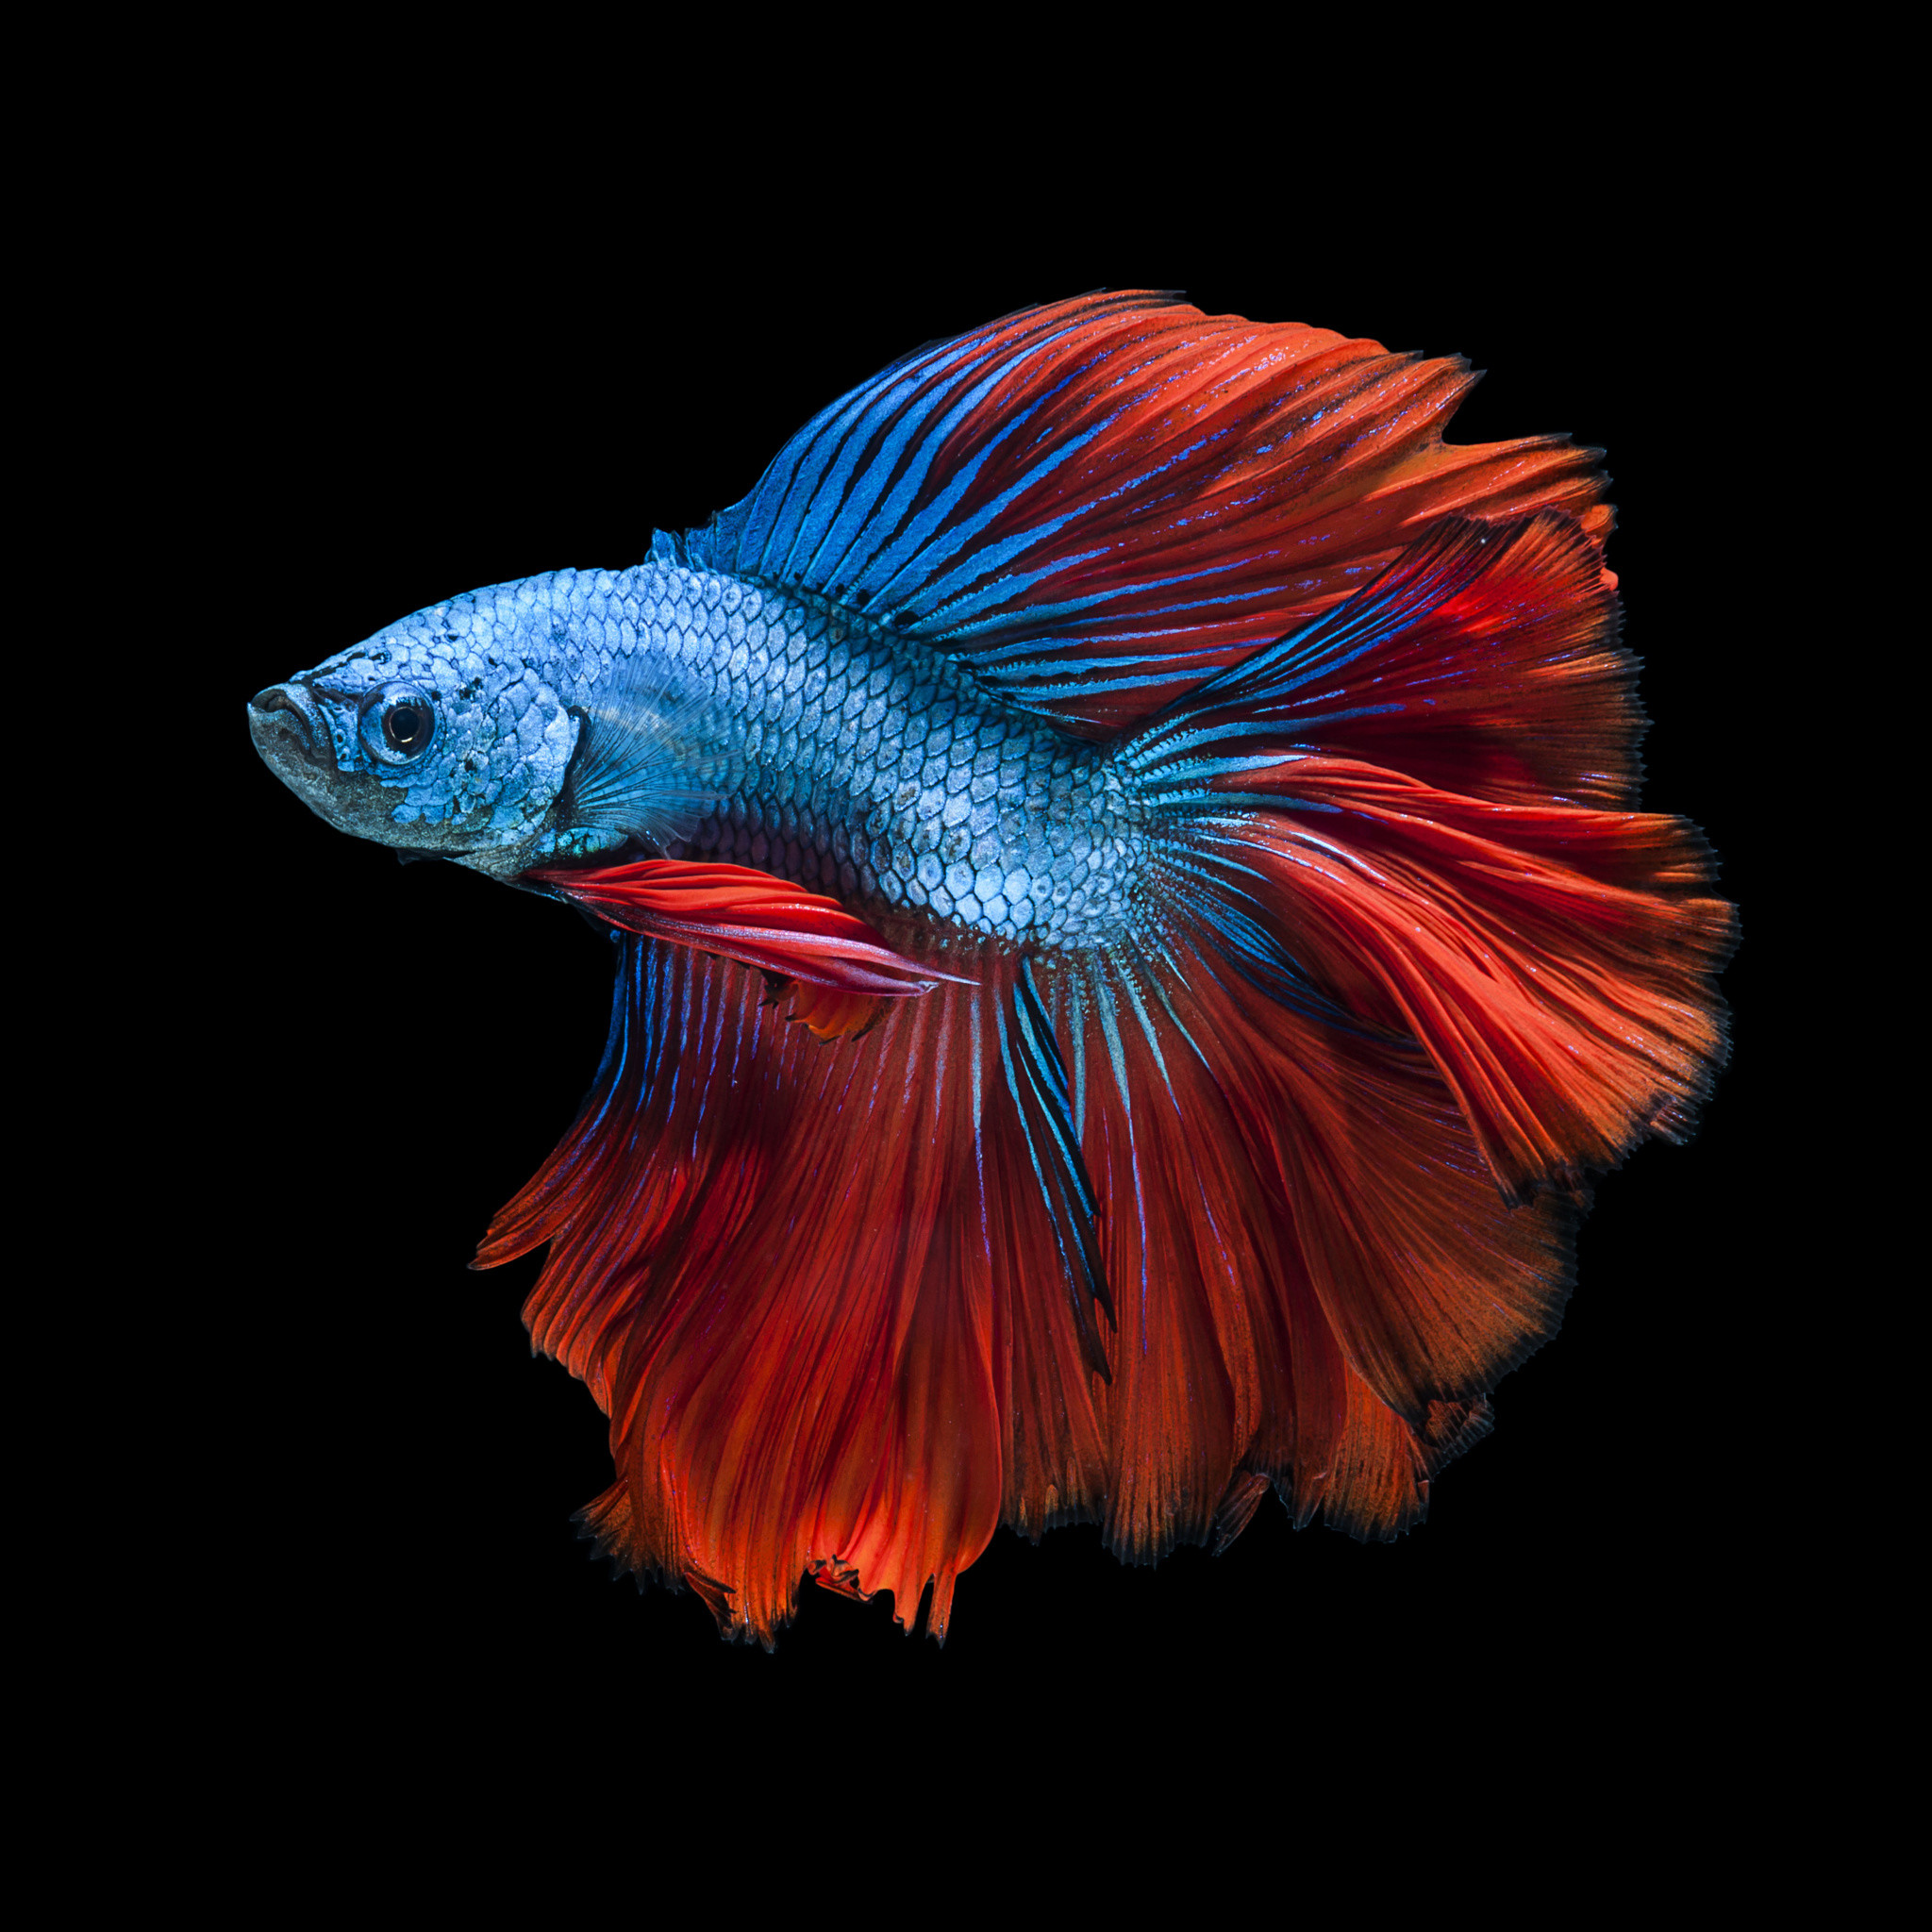 Moving Wallpapers For Iphone 6s Iphone 6s Fish Wallpapers 75 Images